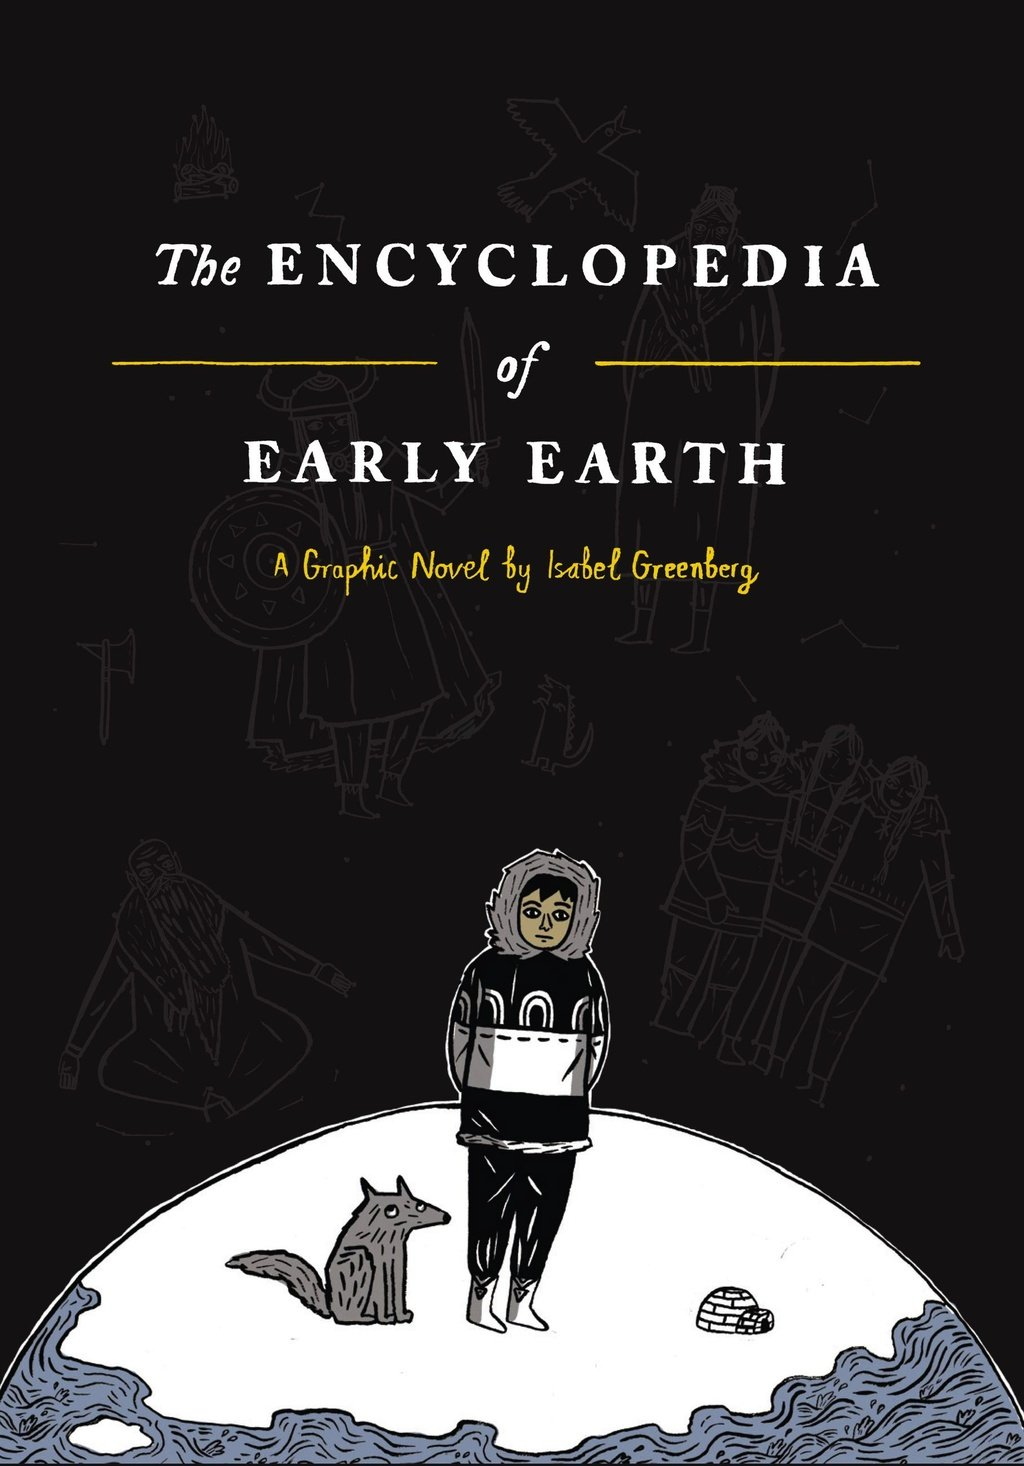 The 100 Best Comics of the Decade: The Encyclopedia of Early Earth